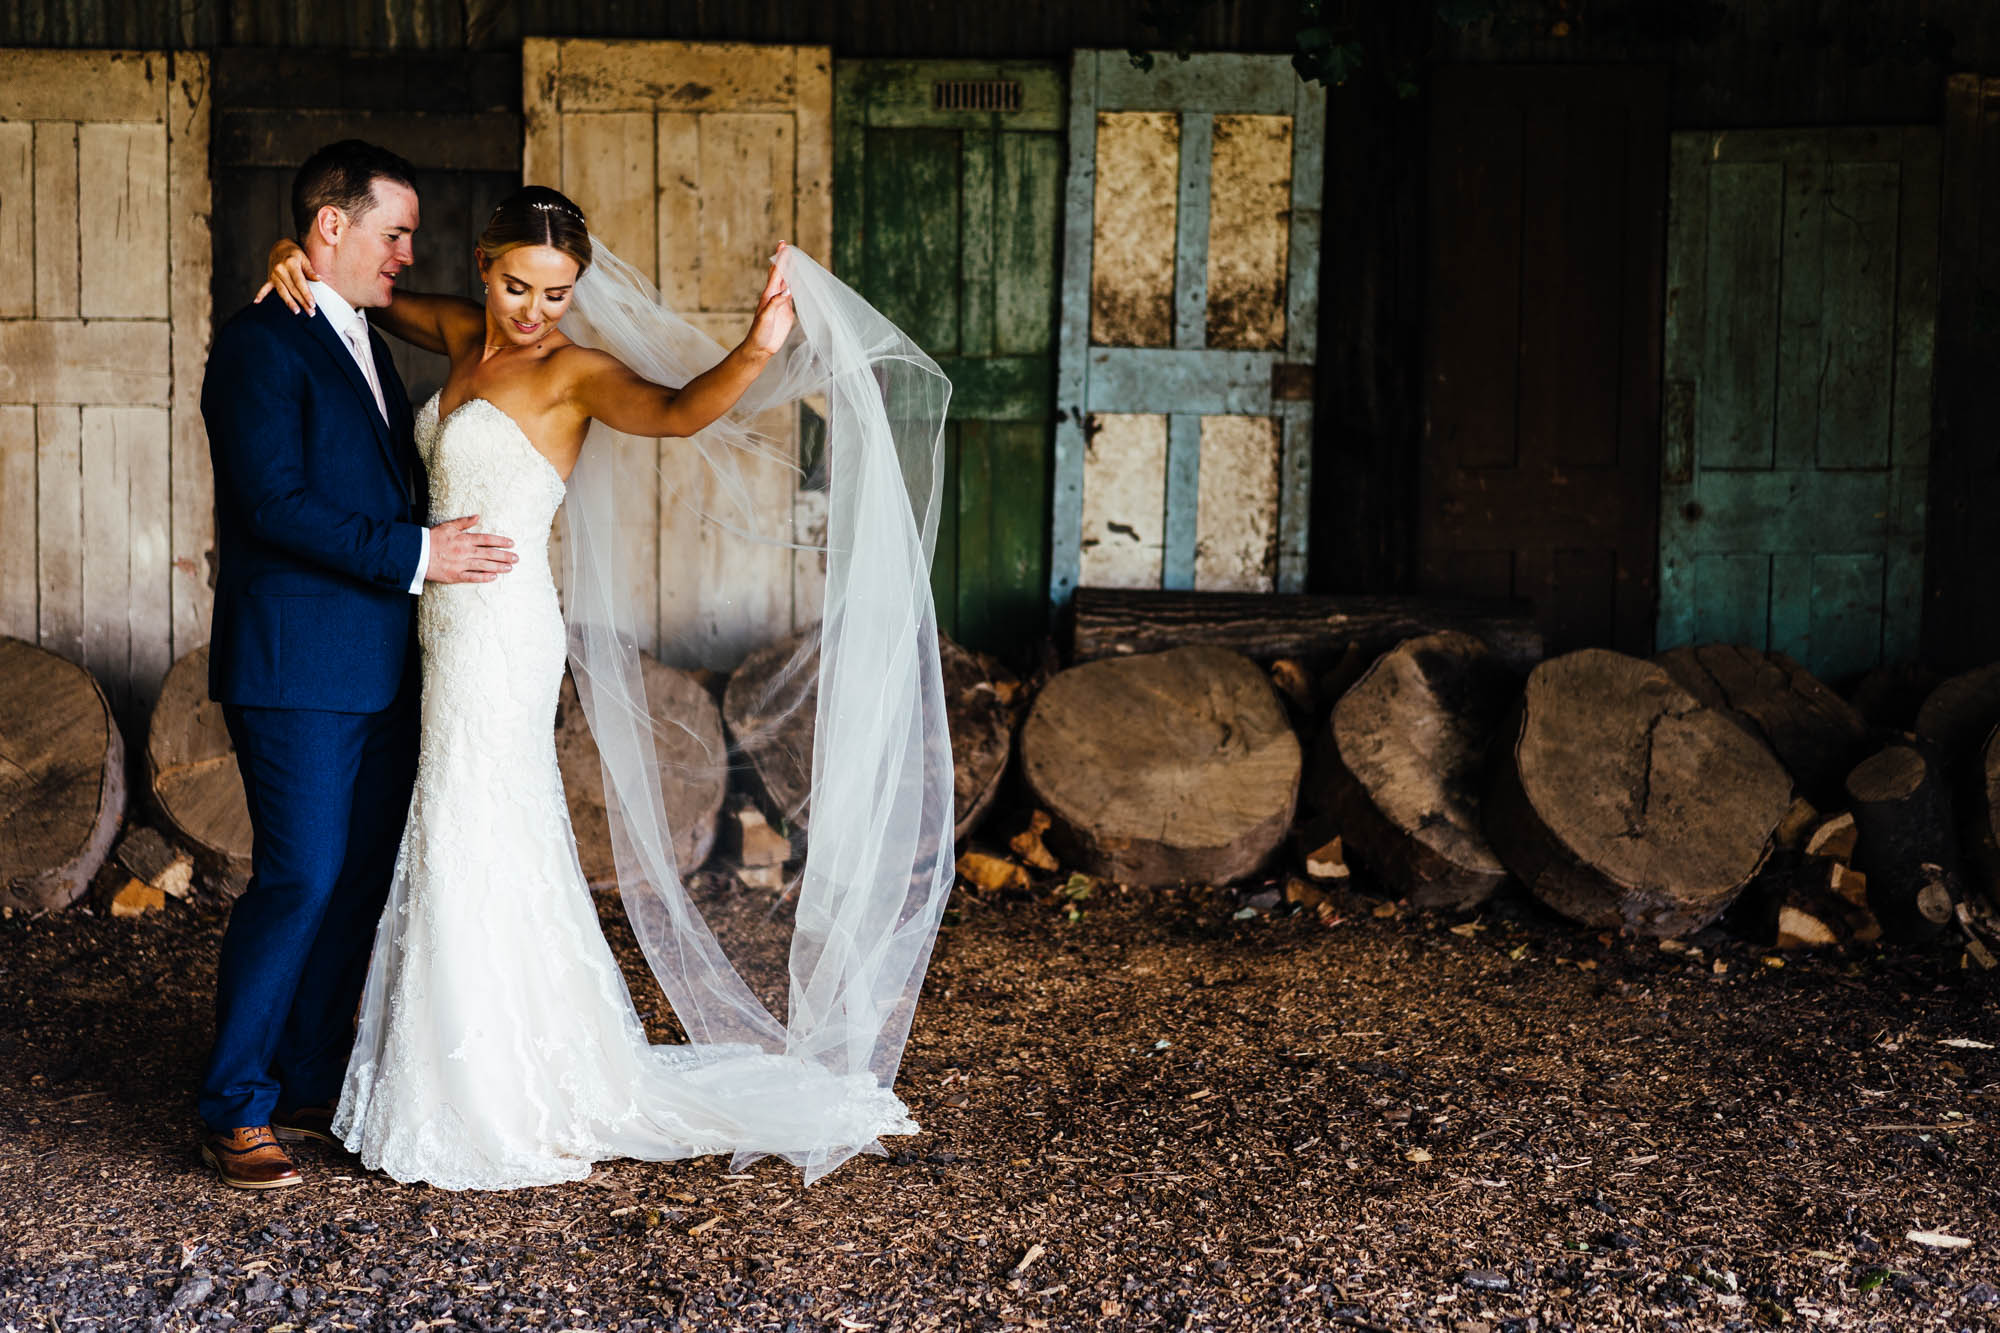 wedding-at-the-barns-at-hunsbury-hill-50